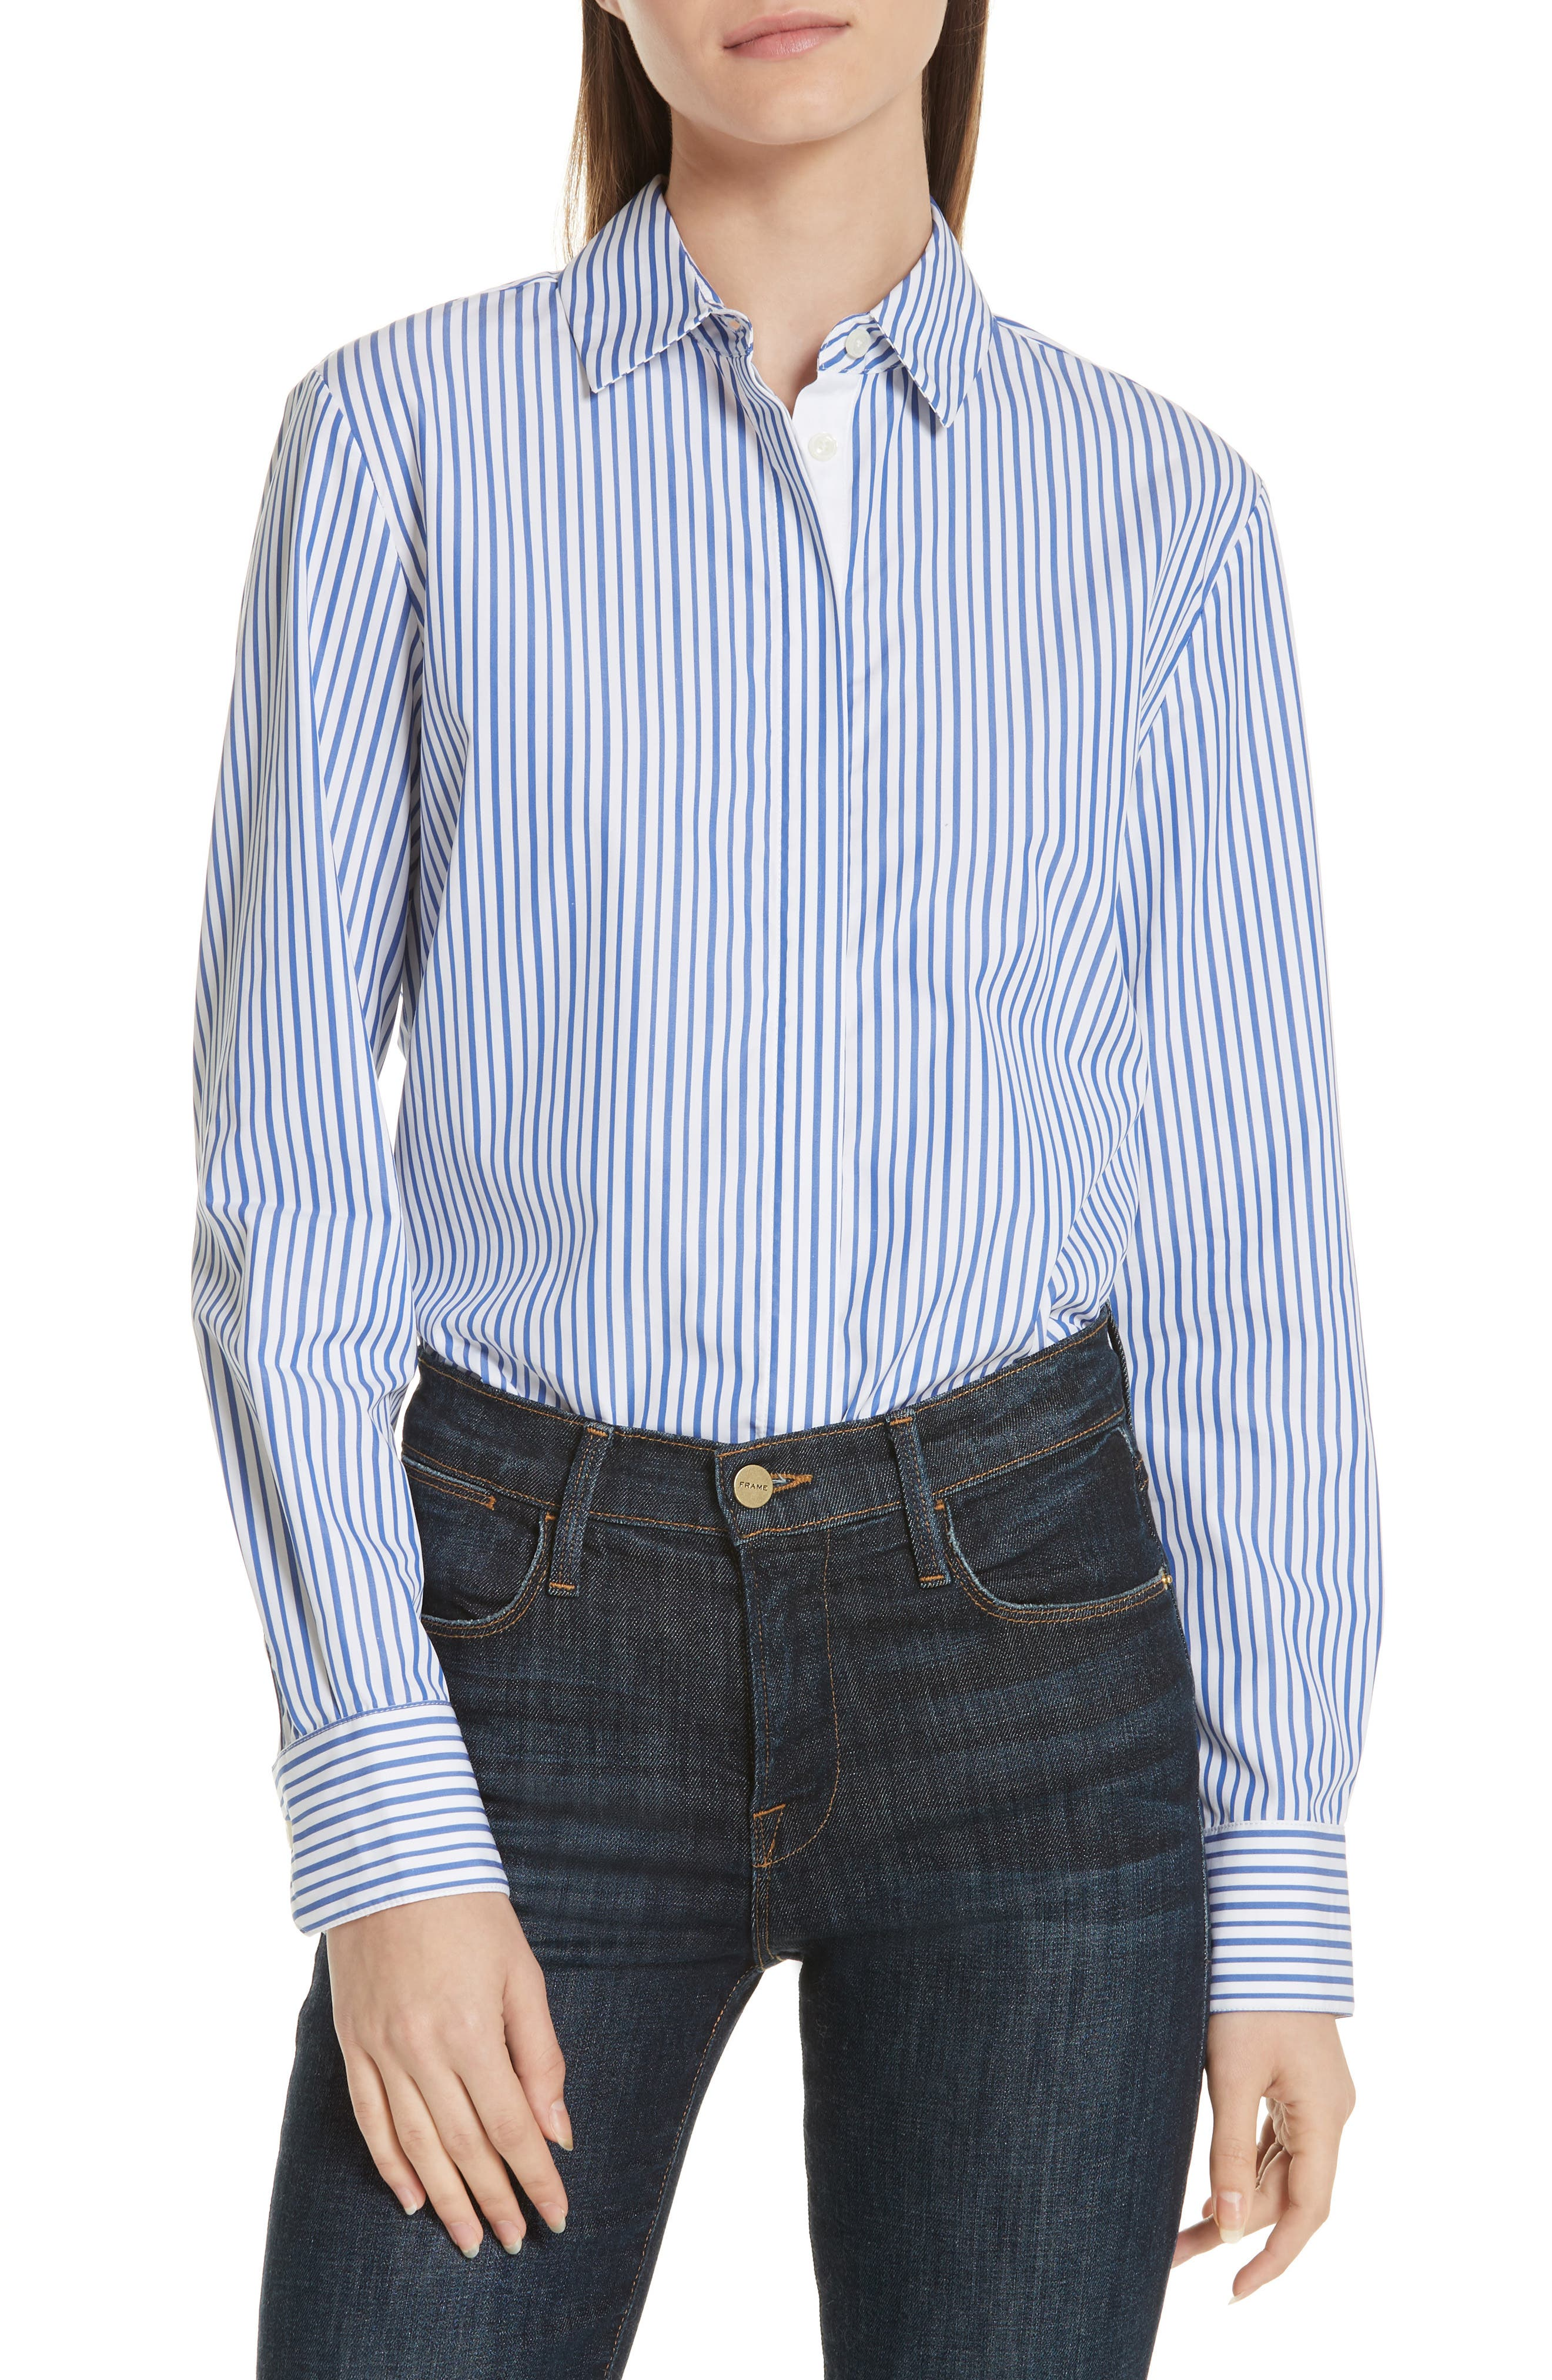 Bleu Man Shirt,                         Main,                         color, BLUE AND WHITE STRIPES